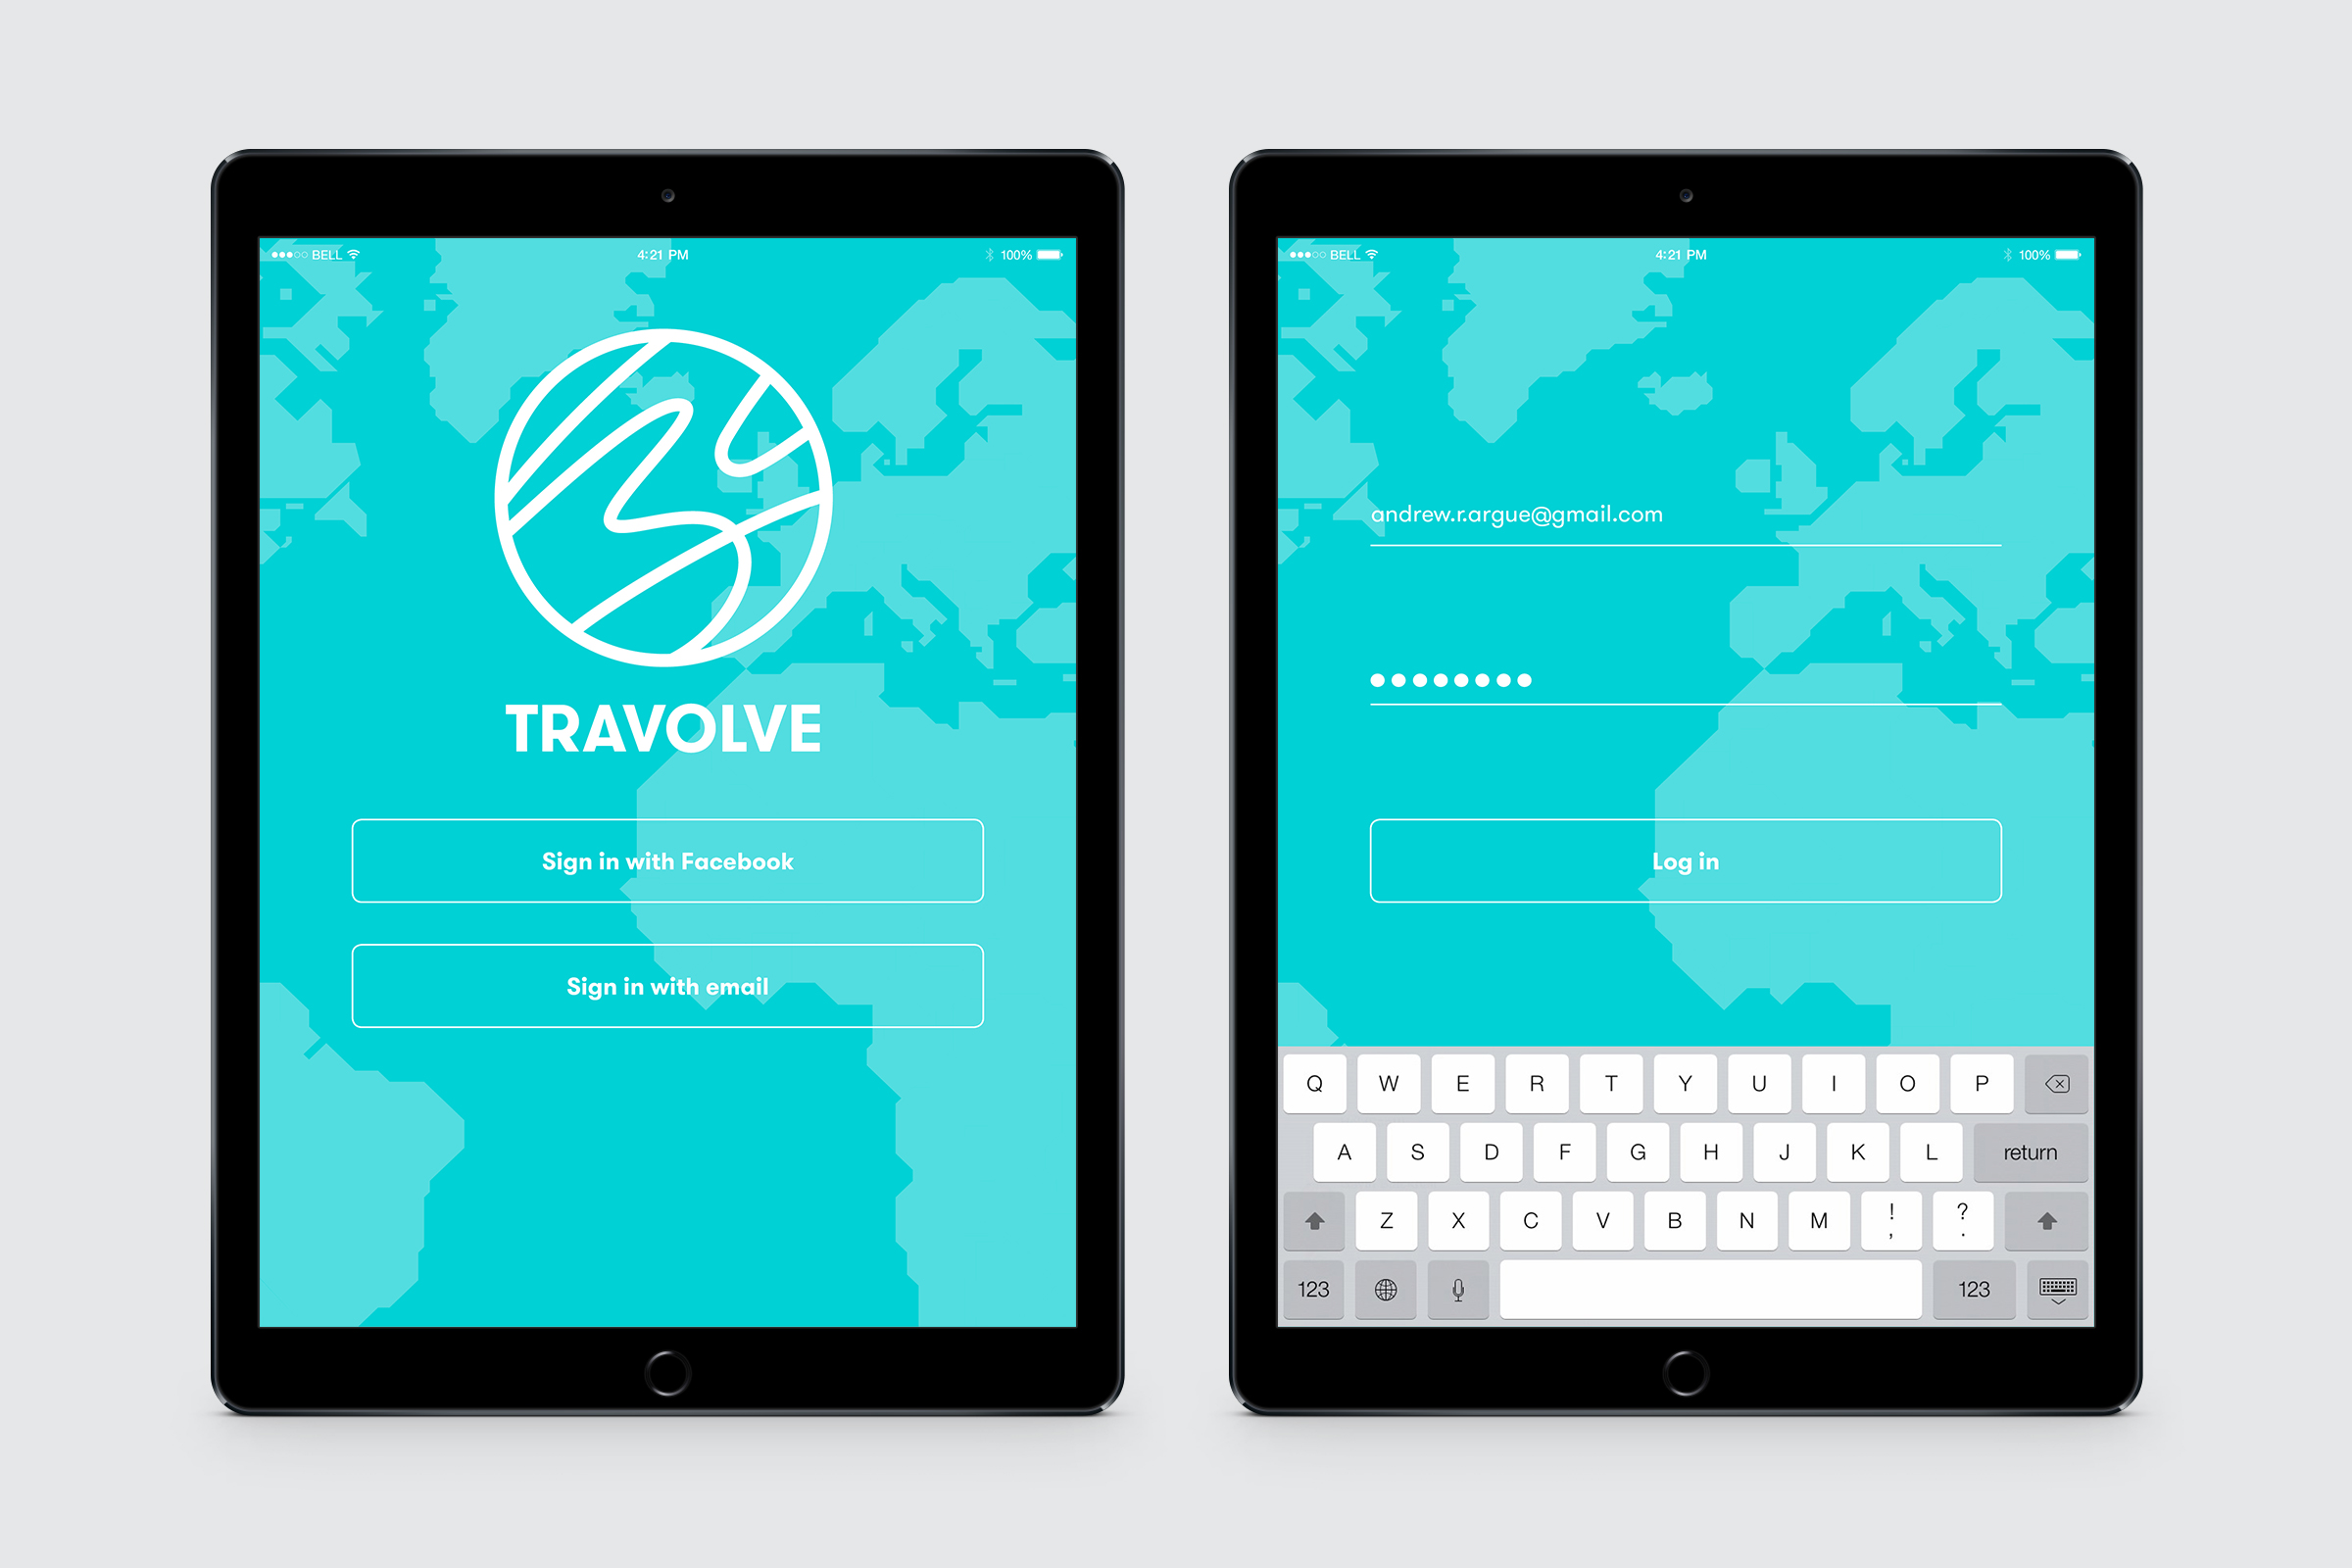 travolve_ipad mockup_2 ipads_login_02